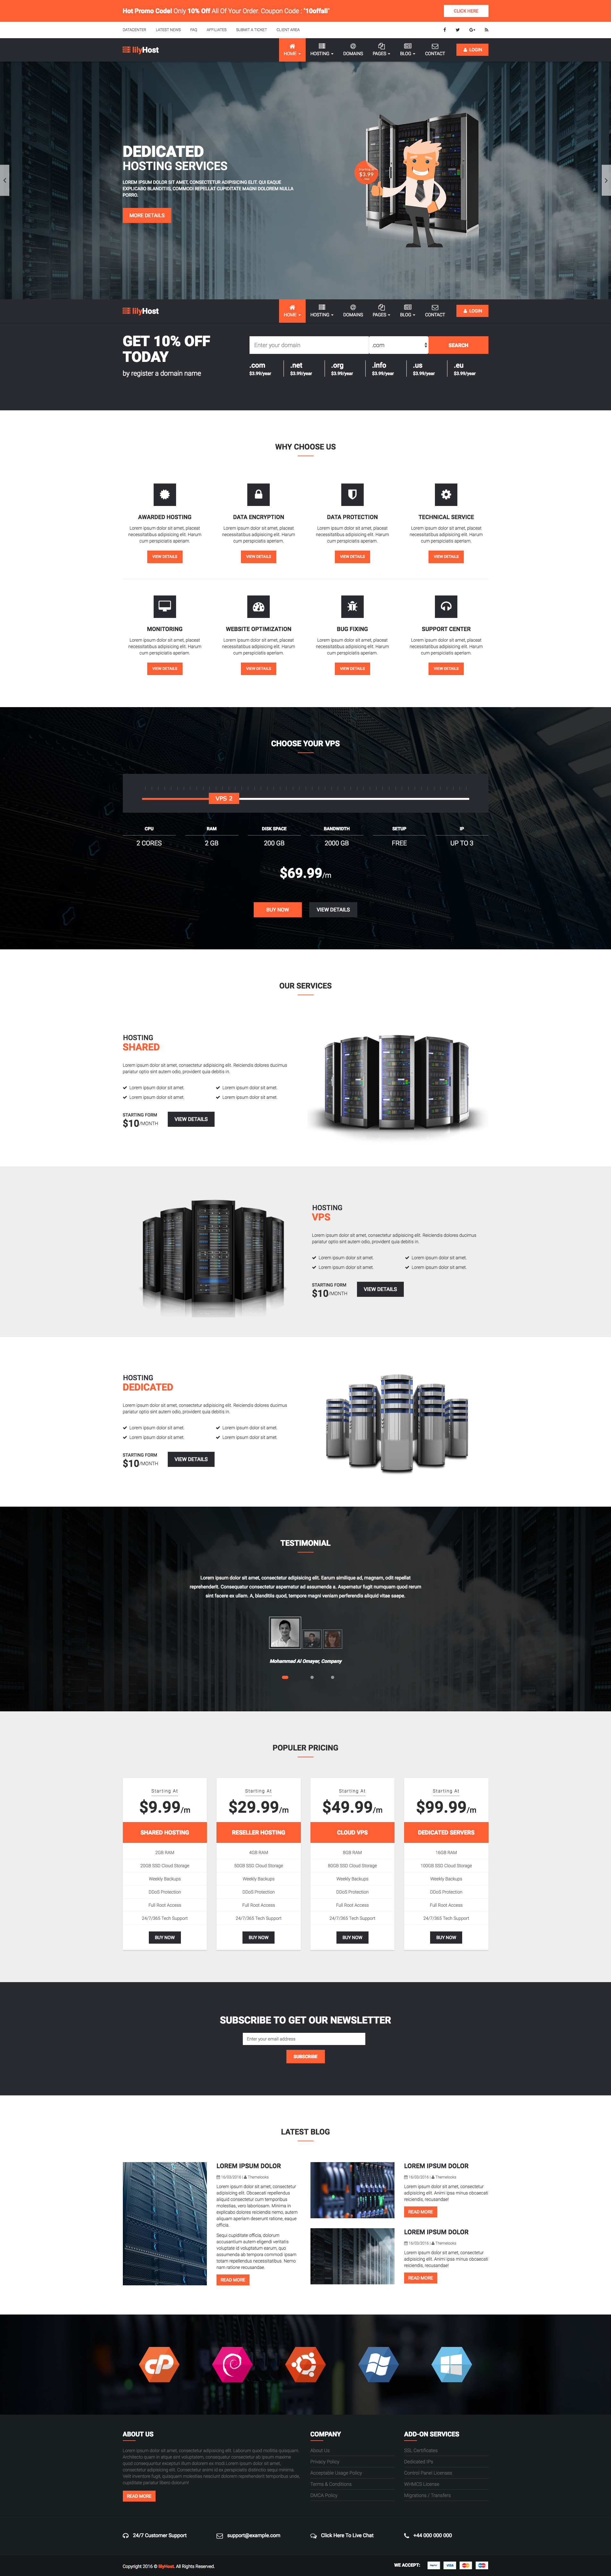 lilyHost | Responsive WHMCS Hosting HTML5 Template. It\'s an HTML5 ...